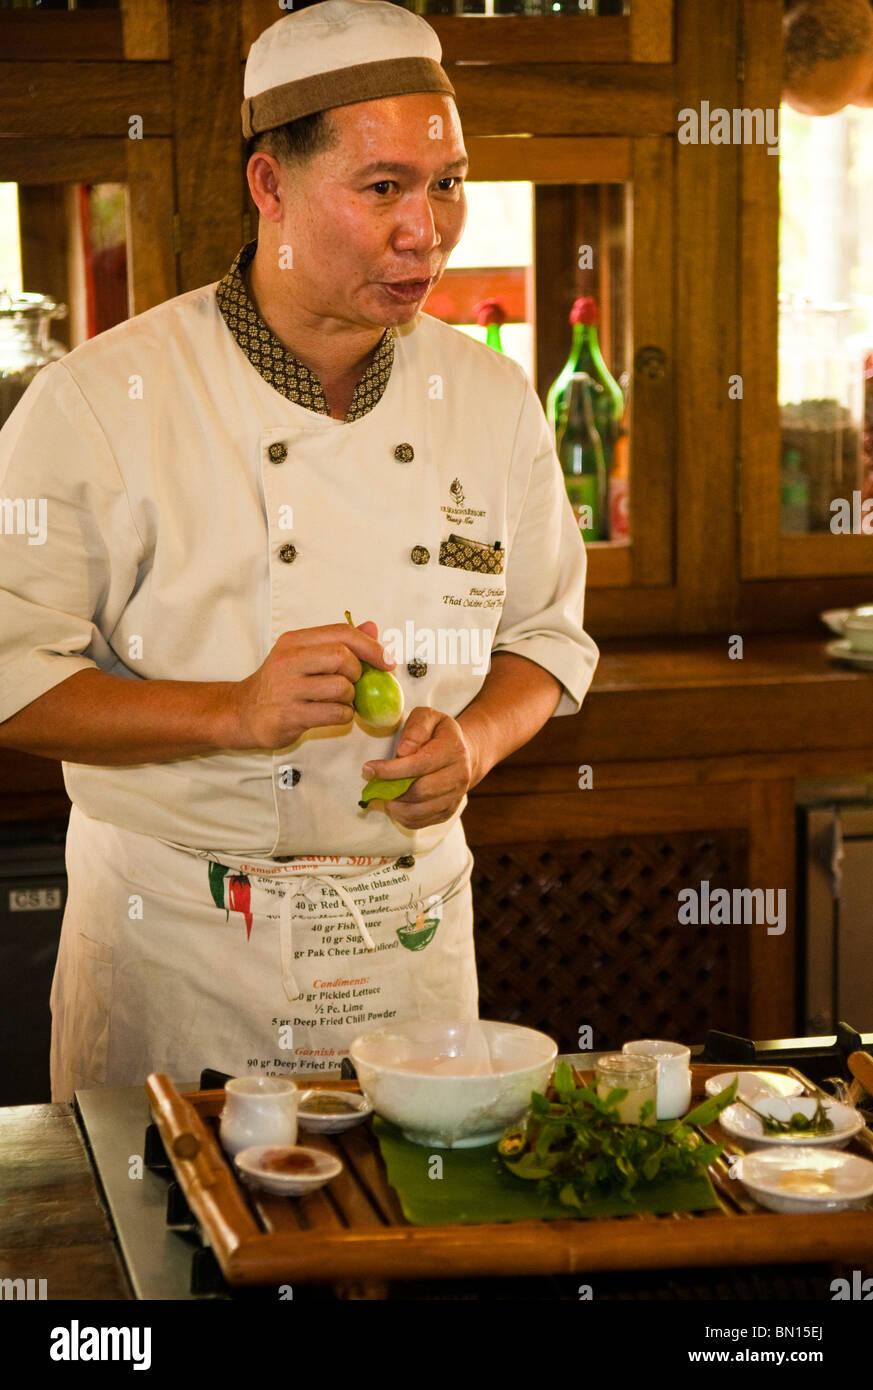 Chef Srichan Pitak leads the Thai cooking class at Four Seasons Resort in Chiang Mai, Thailand. - Stock Image